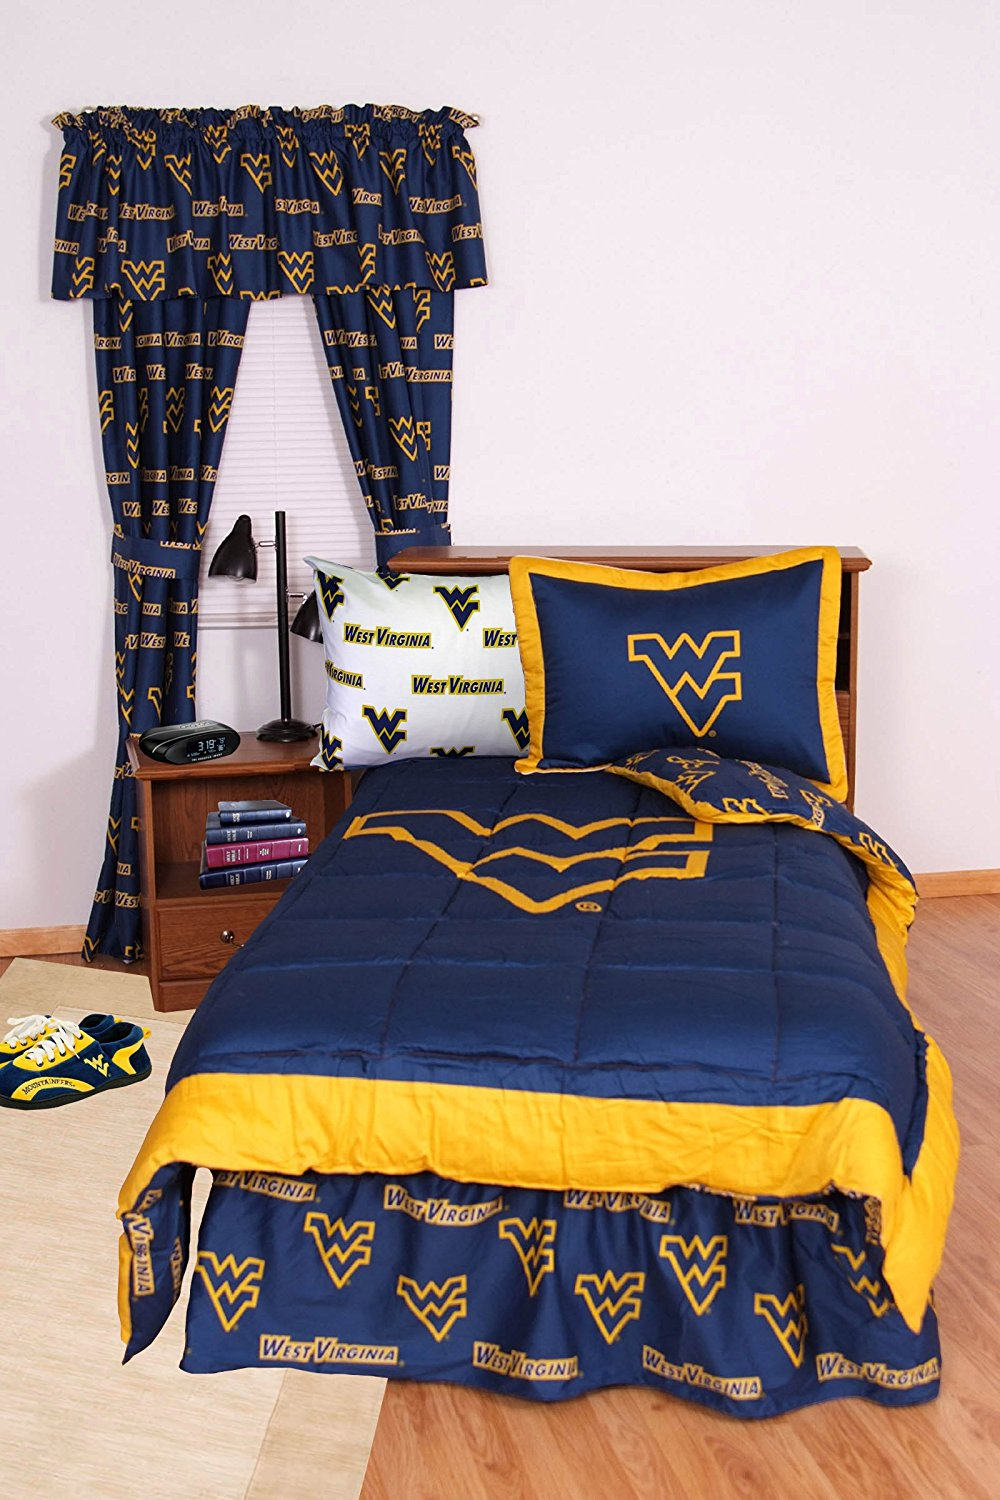 "West Virginia Mountaineers (2) Piece Twin Reversible Comforter Set and One Matching Window Valance/Drape Set (Drape Length 63"") - Entire Set includes: (1) Twin Reversible Comforter, (1) Standard Pillow Sham and (1) Matching Window Valance/Drape Set - Drape Length 63""- Save Big By Bundling!"